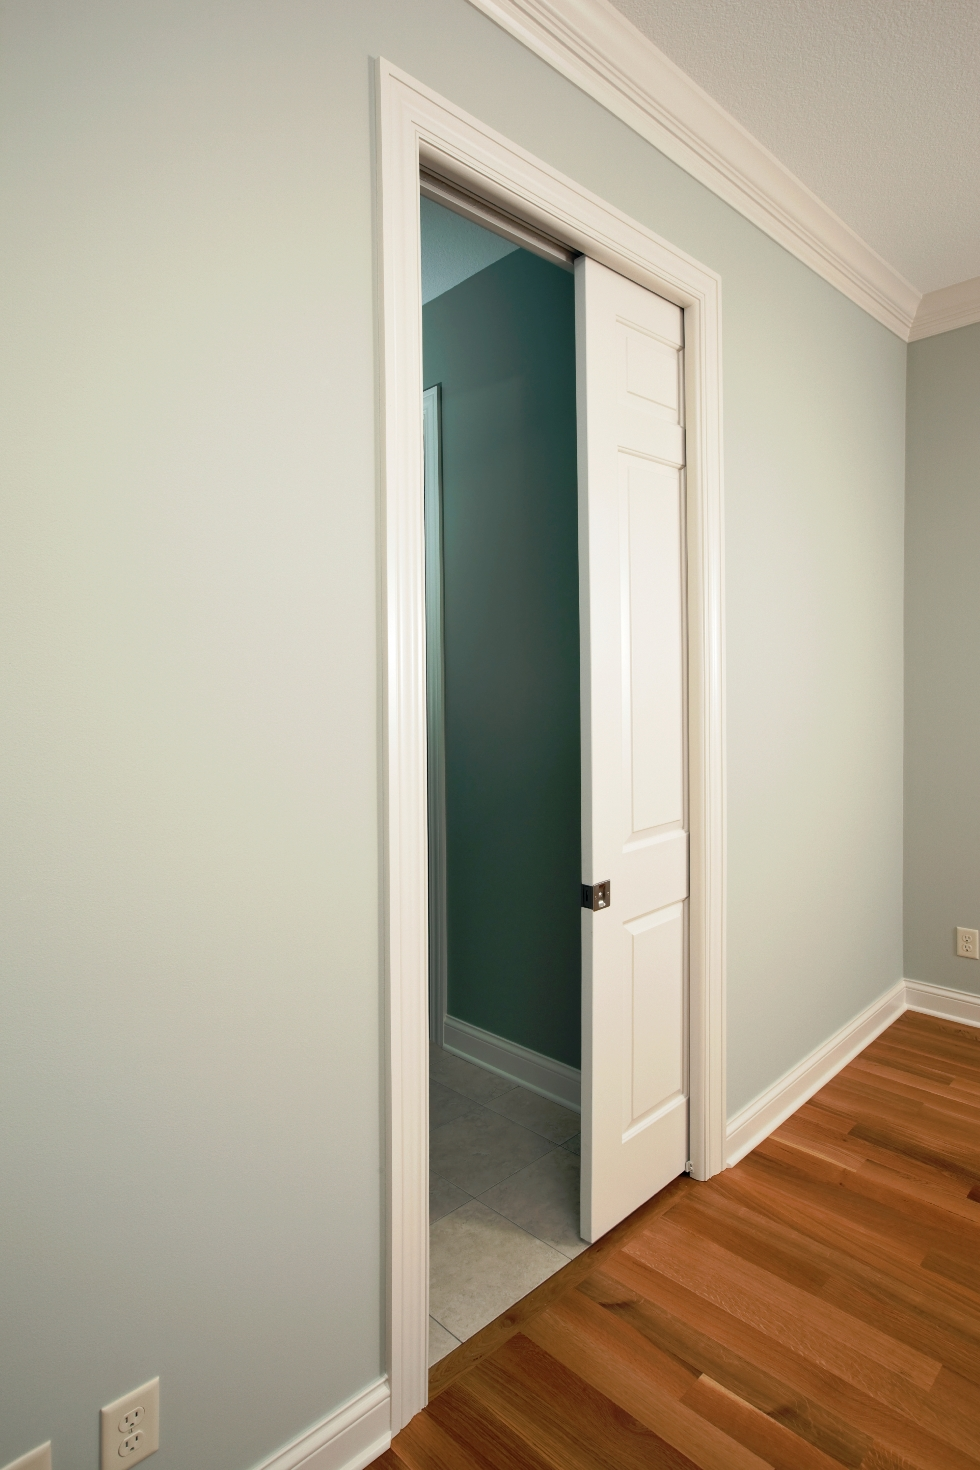 How To Install A Pocket Door Pro Construction Guide